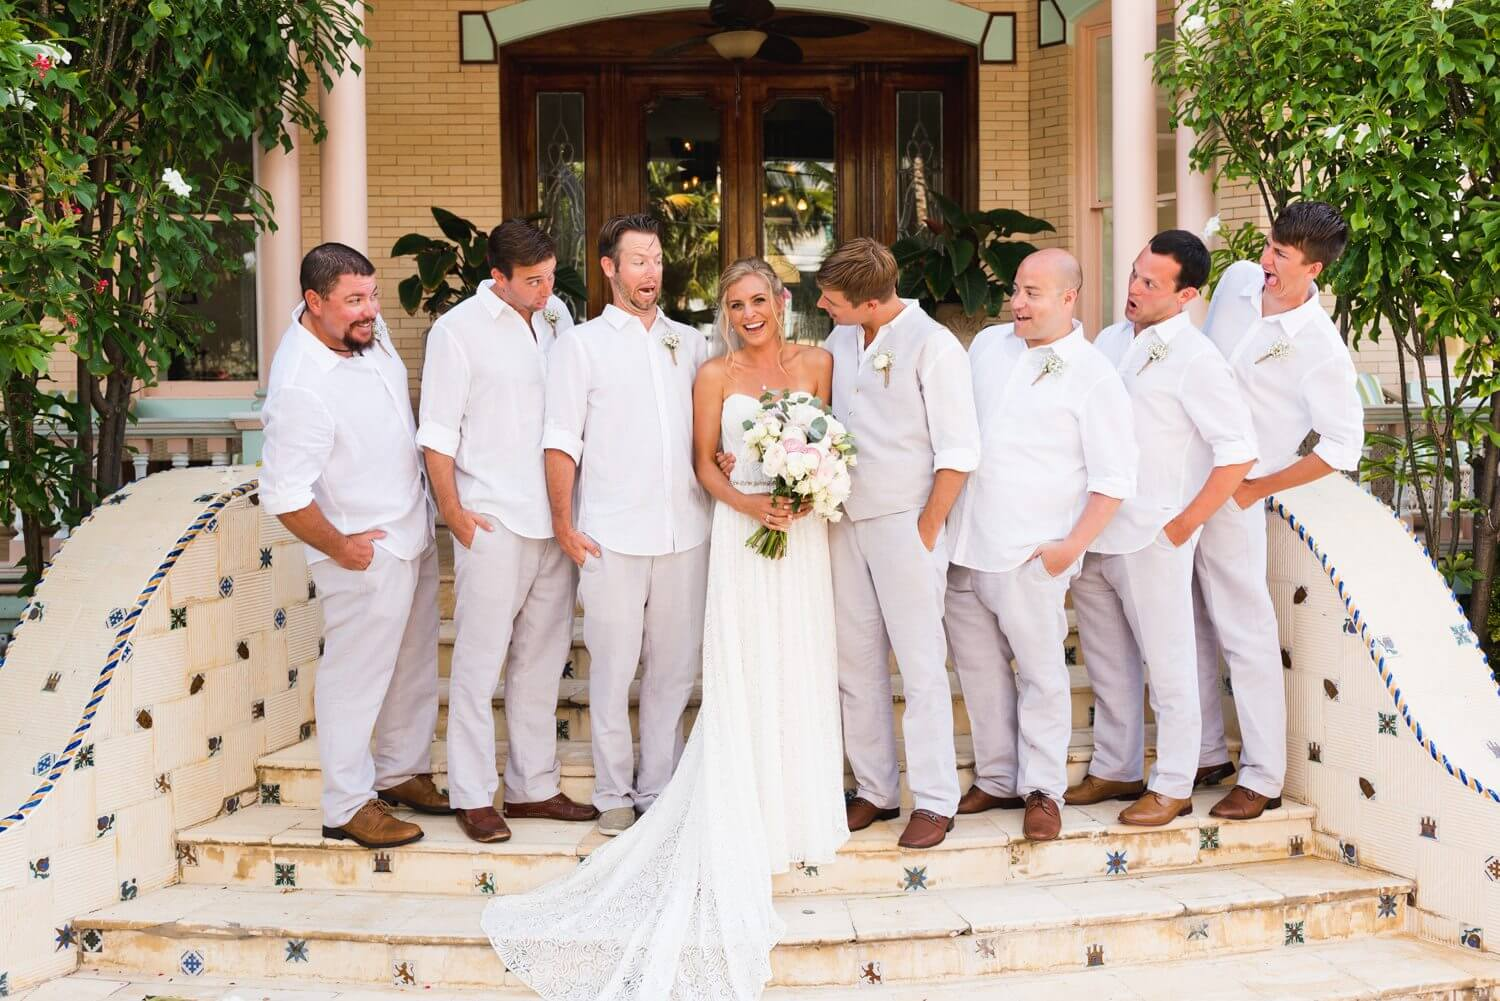 Freas Photography Southernmost House Wedding 72 - Boho Styled Key West Wedding at the Southernmost House in Key West, Florida